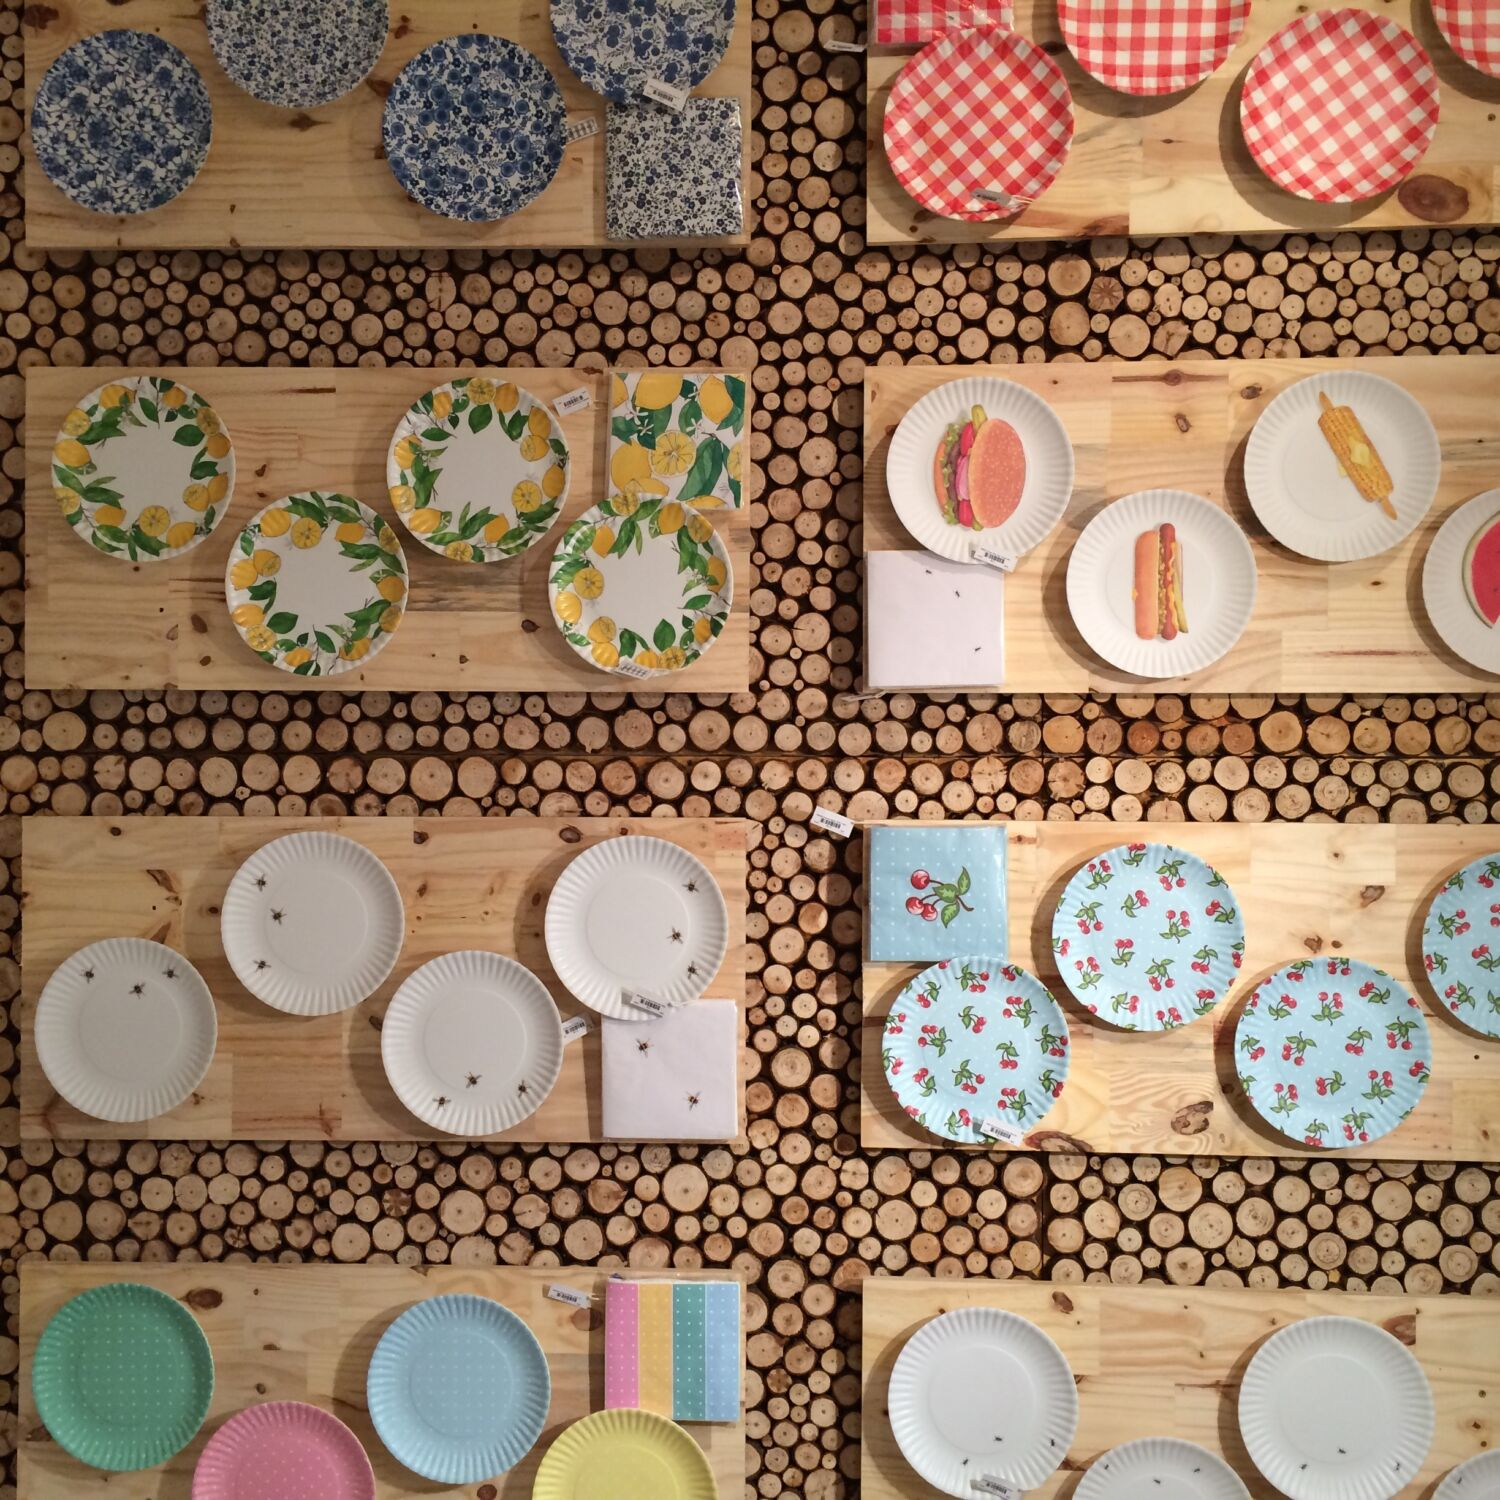 IMG_7841_2 & Melamine Madness: Fall in Love with non breakable colorful dinnerware